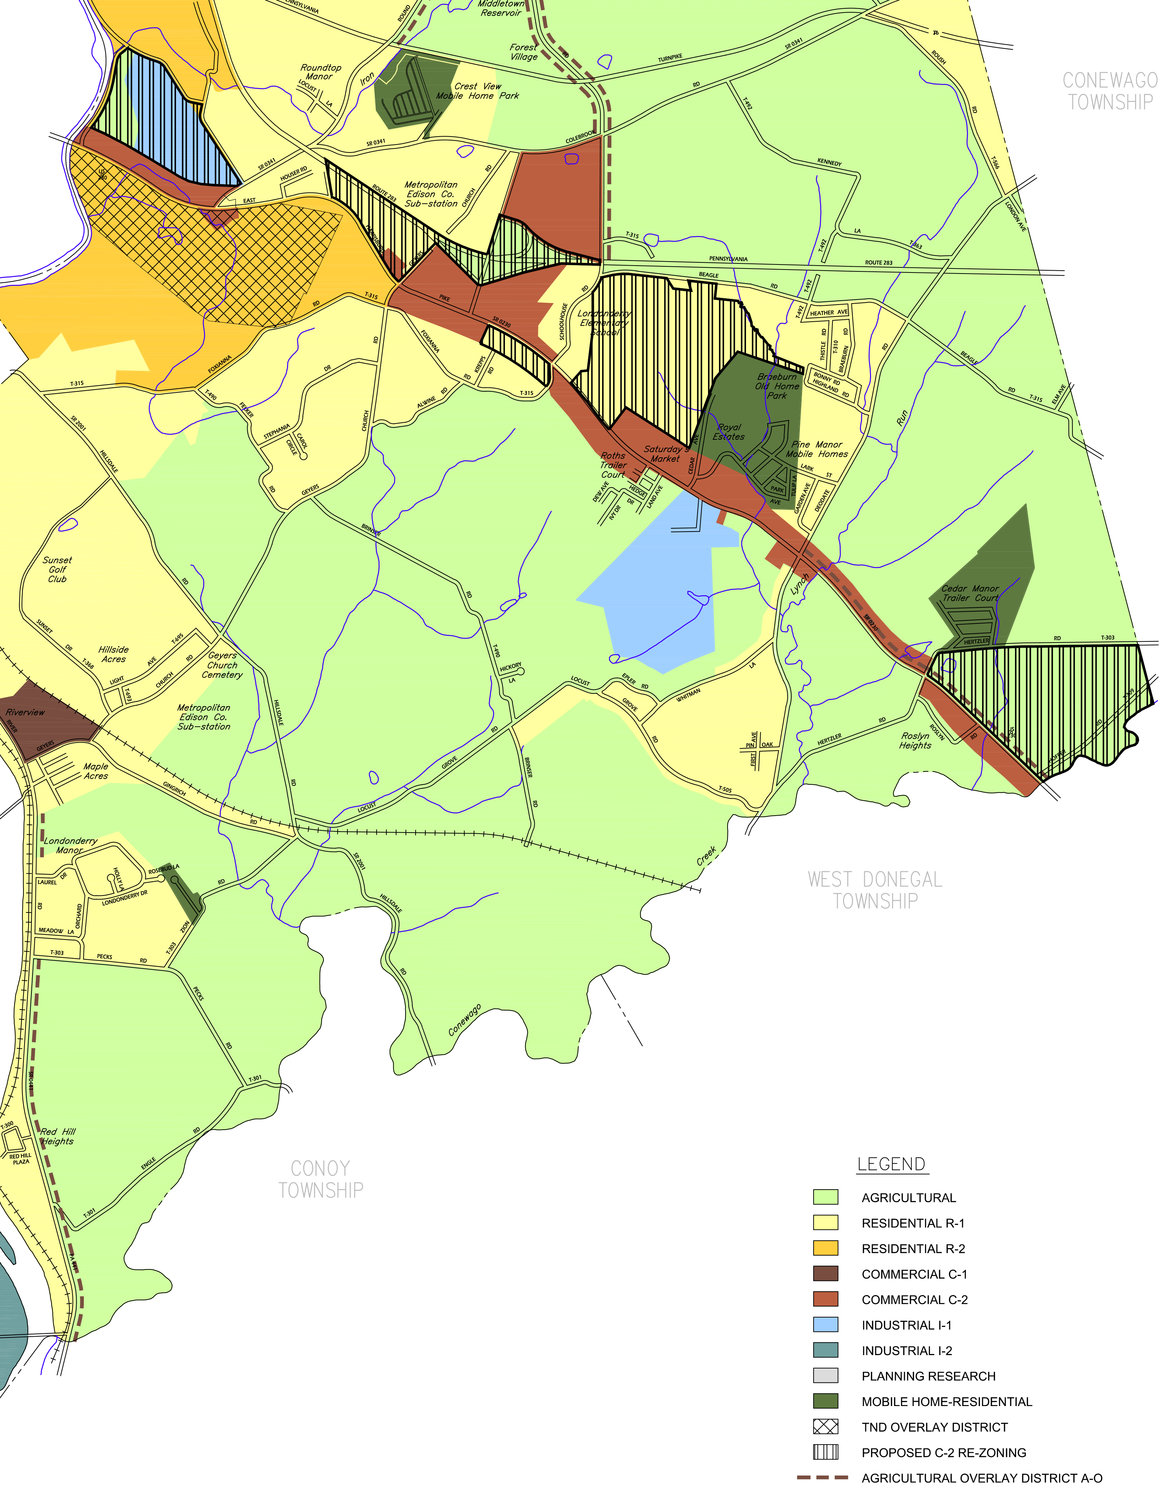 The above map shows zoning for Londonderry Township. The striped areas indicate where the C-2 commercial district will be expanded if approved by township supervisors.